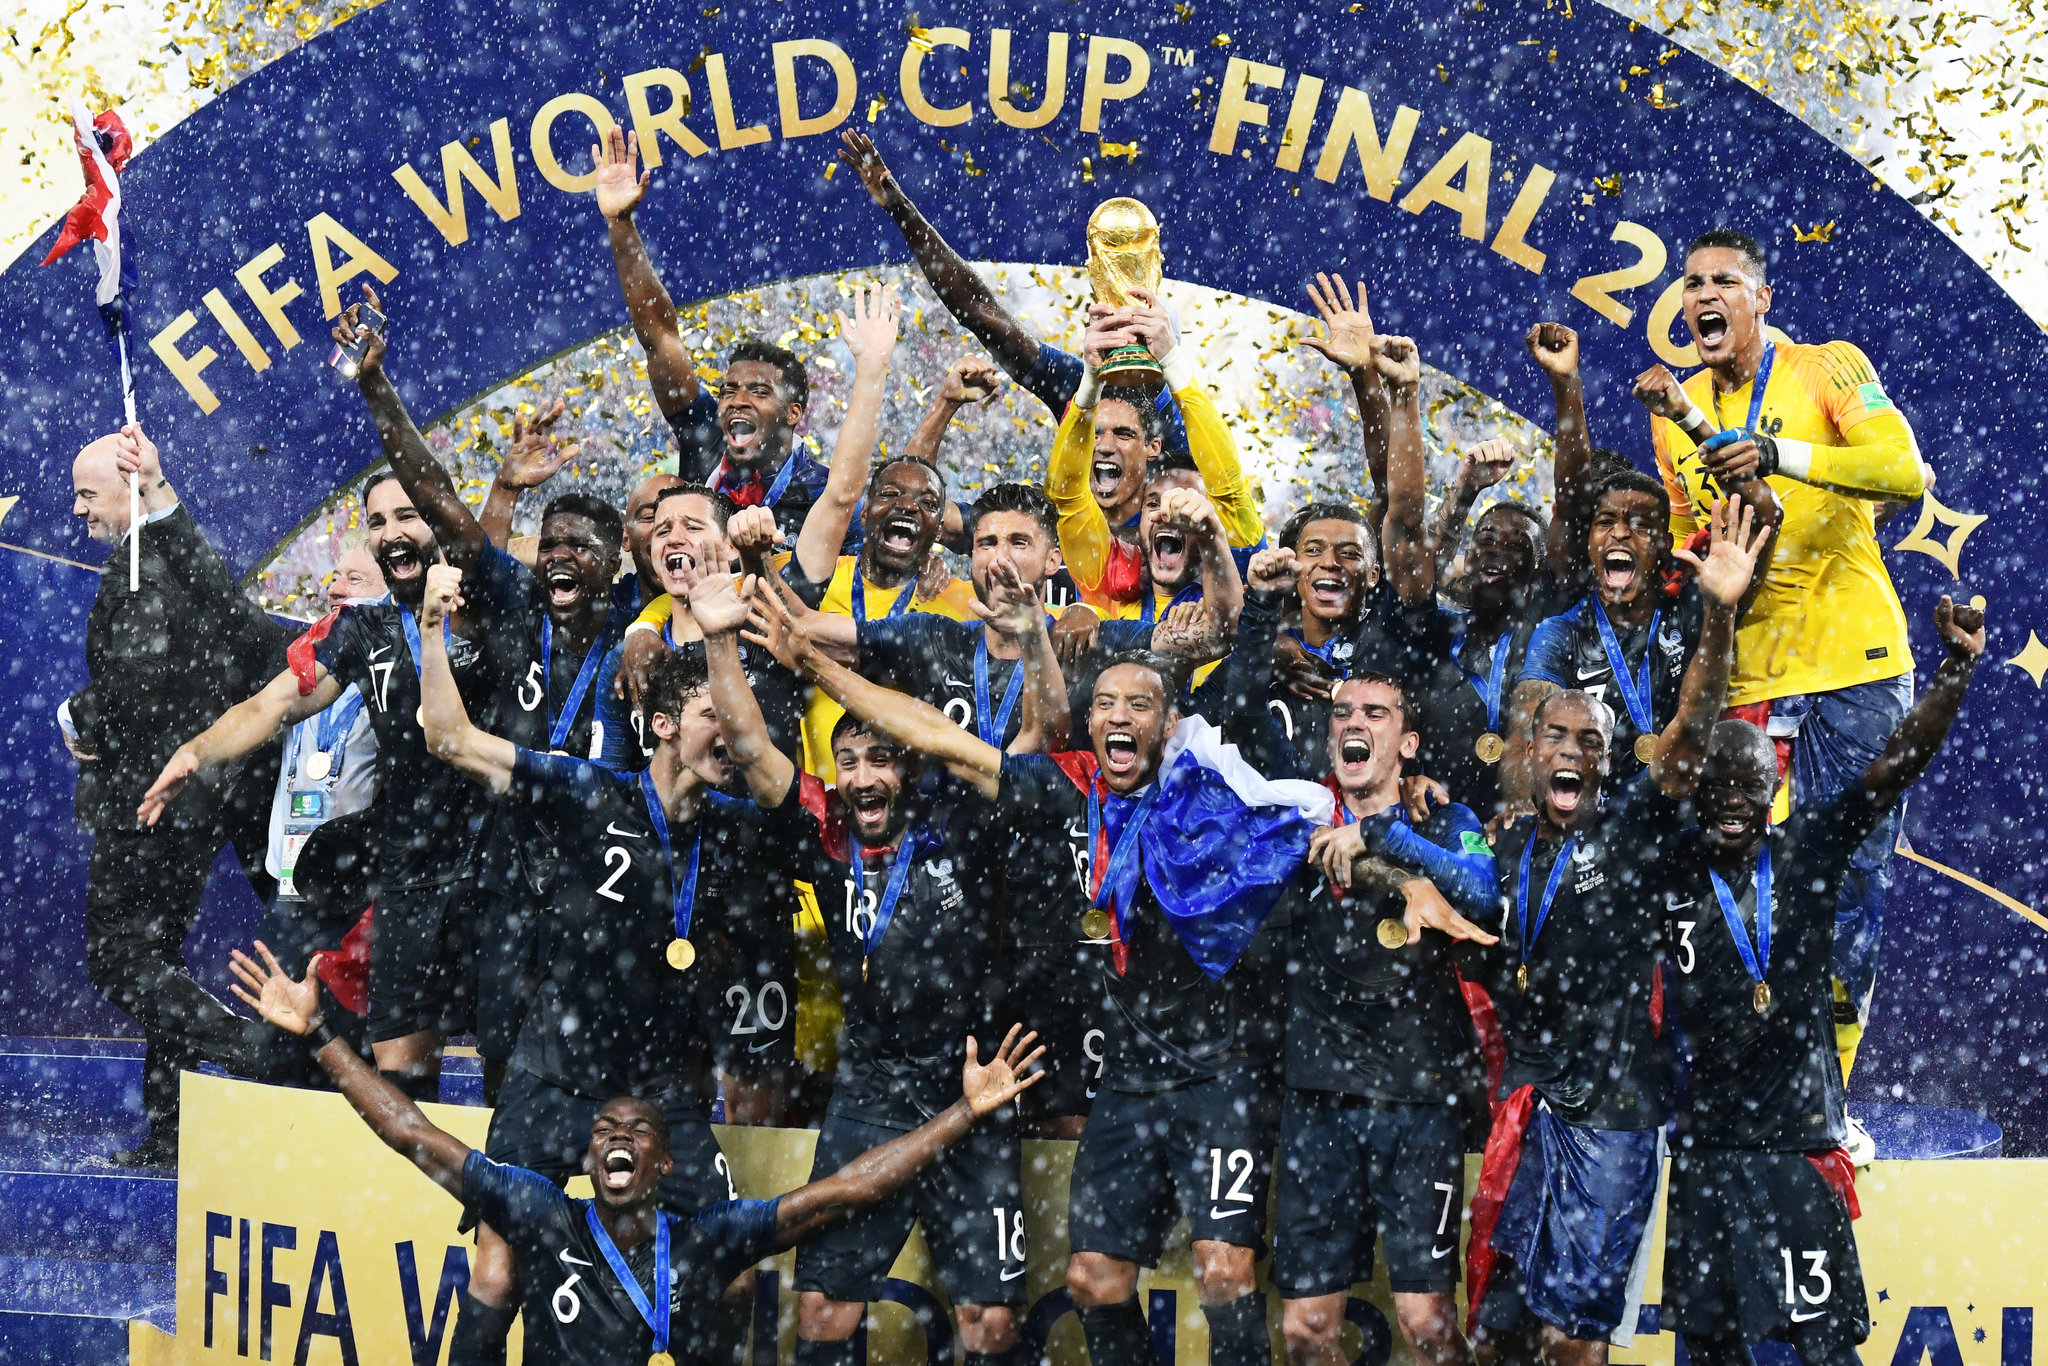 France goes Home with the World Cup After Winning the FIFA world Cup Final 2018.